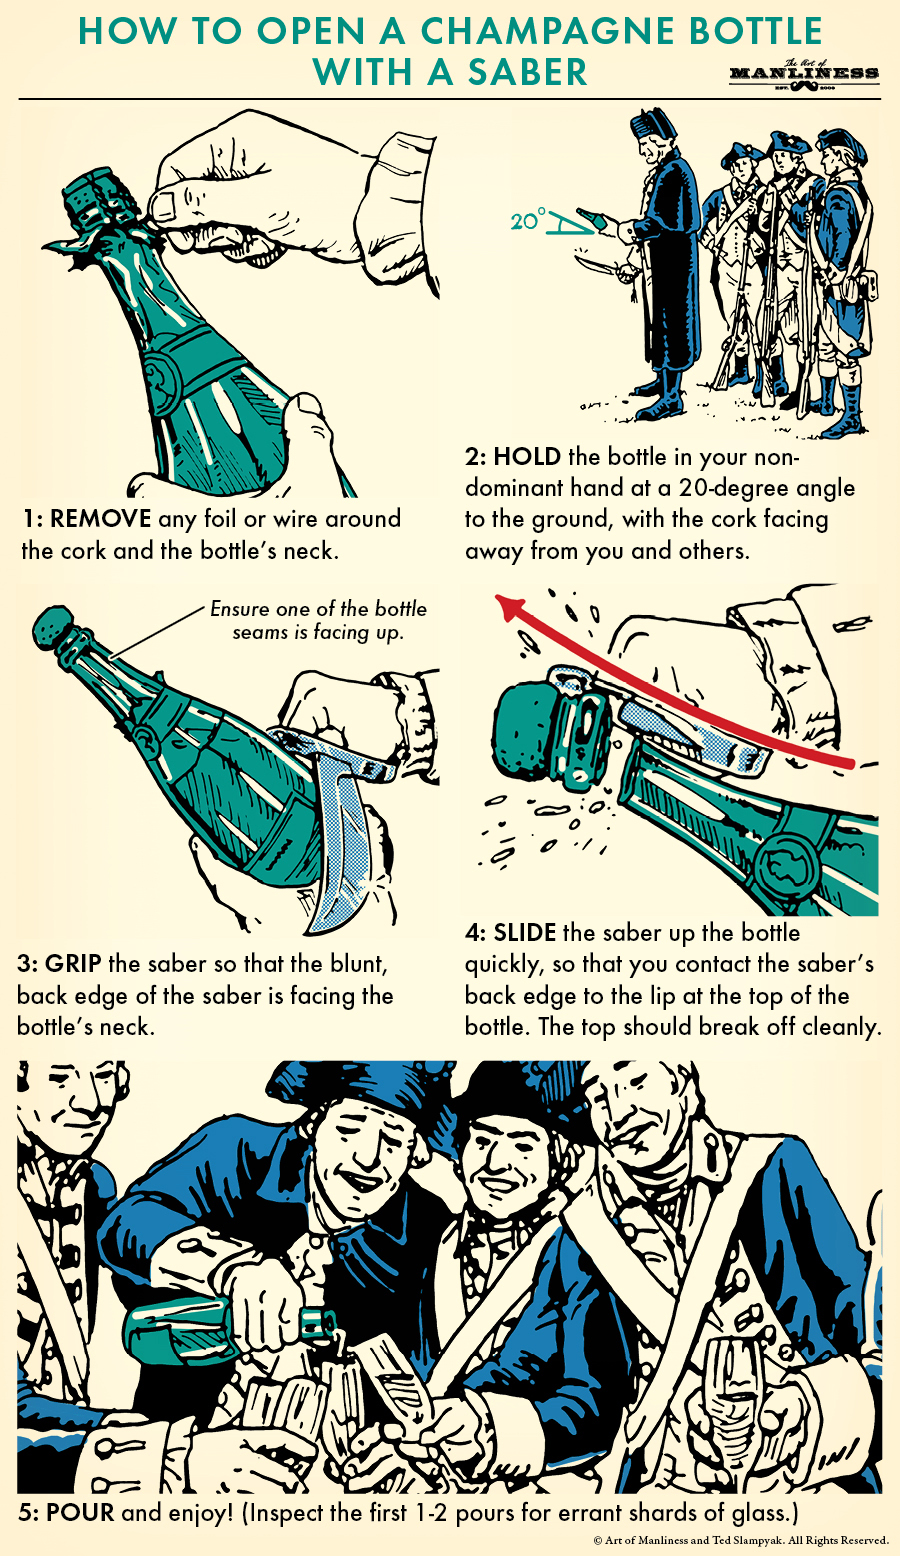 how to open a champagne bottle with a saber diagram